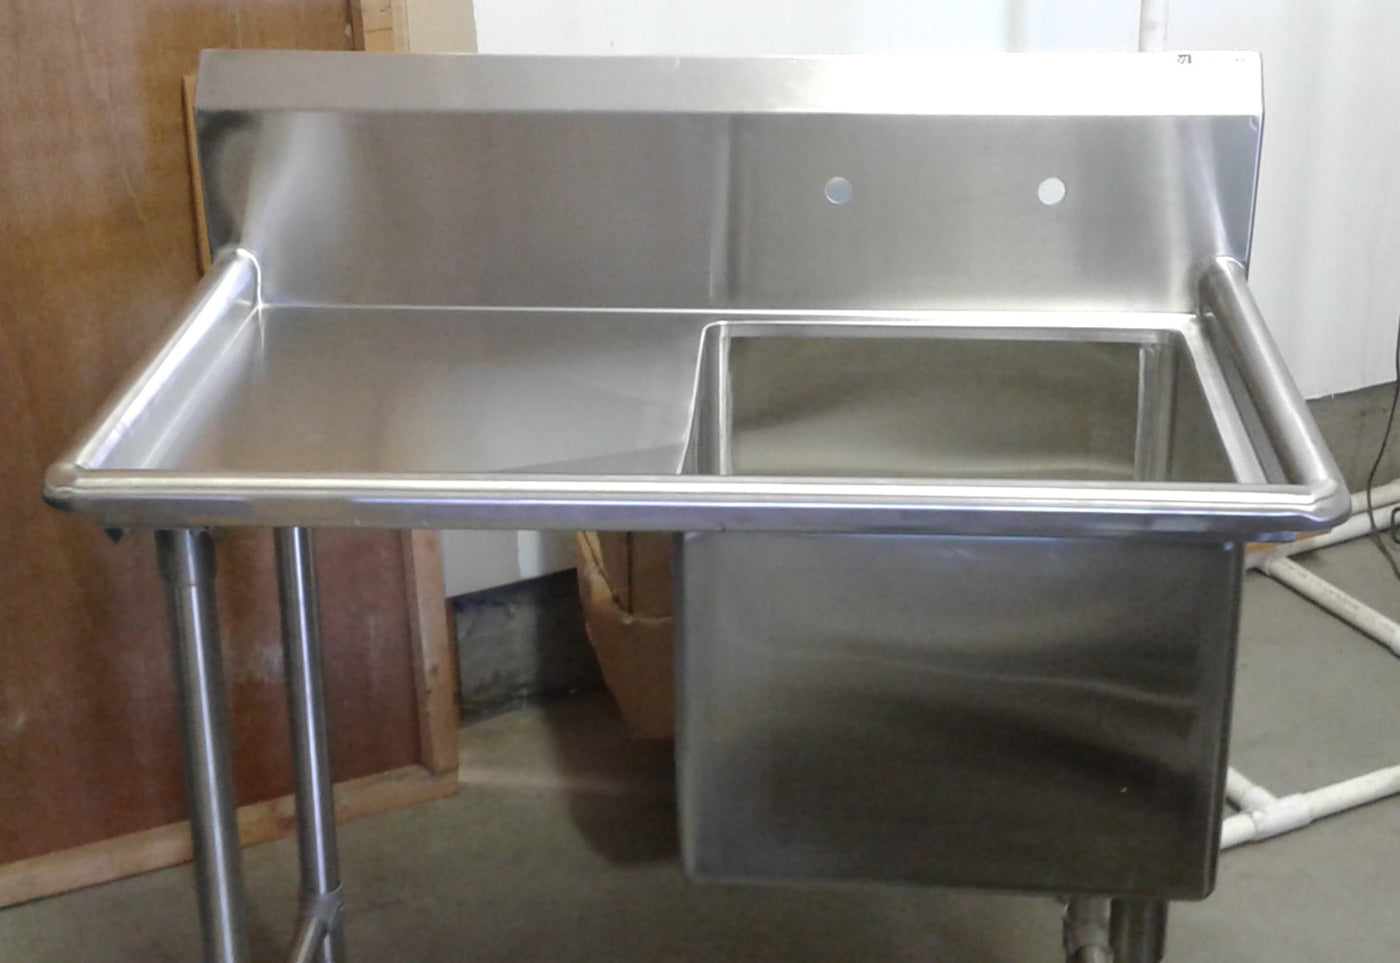 Awesome New John Boos One Compartment Sink W/ Left Side Drainboard